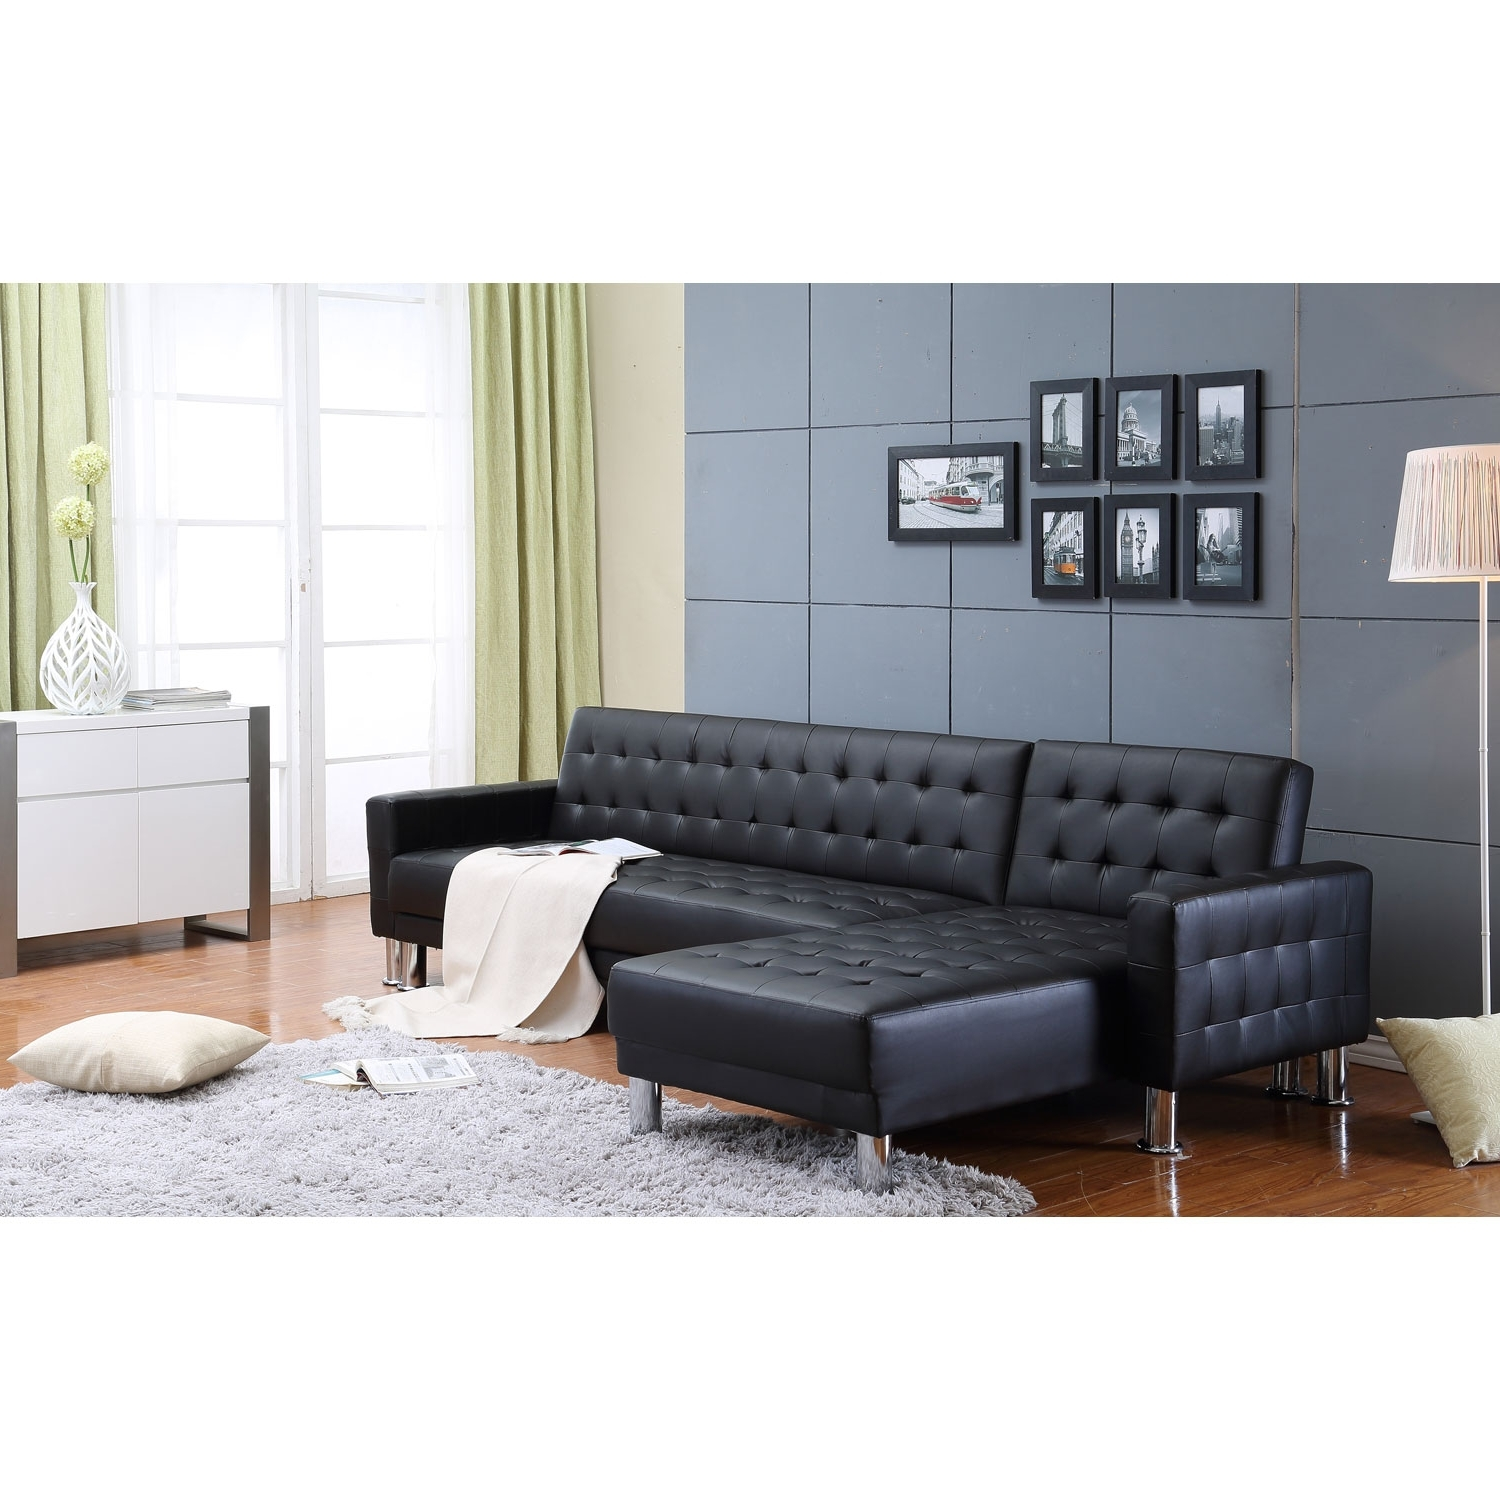 Best And Newest Kijiji Edmonton Sectional Sofas Intended For Sectional Sofah Storage Chaise Sleeper Leather Ikea Photos Hd (View 2 of 20)